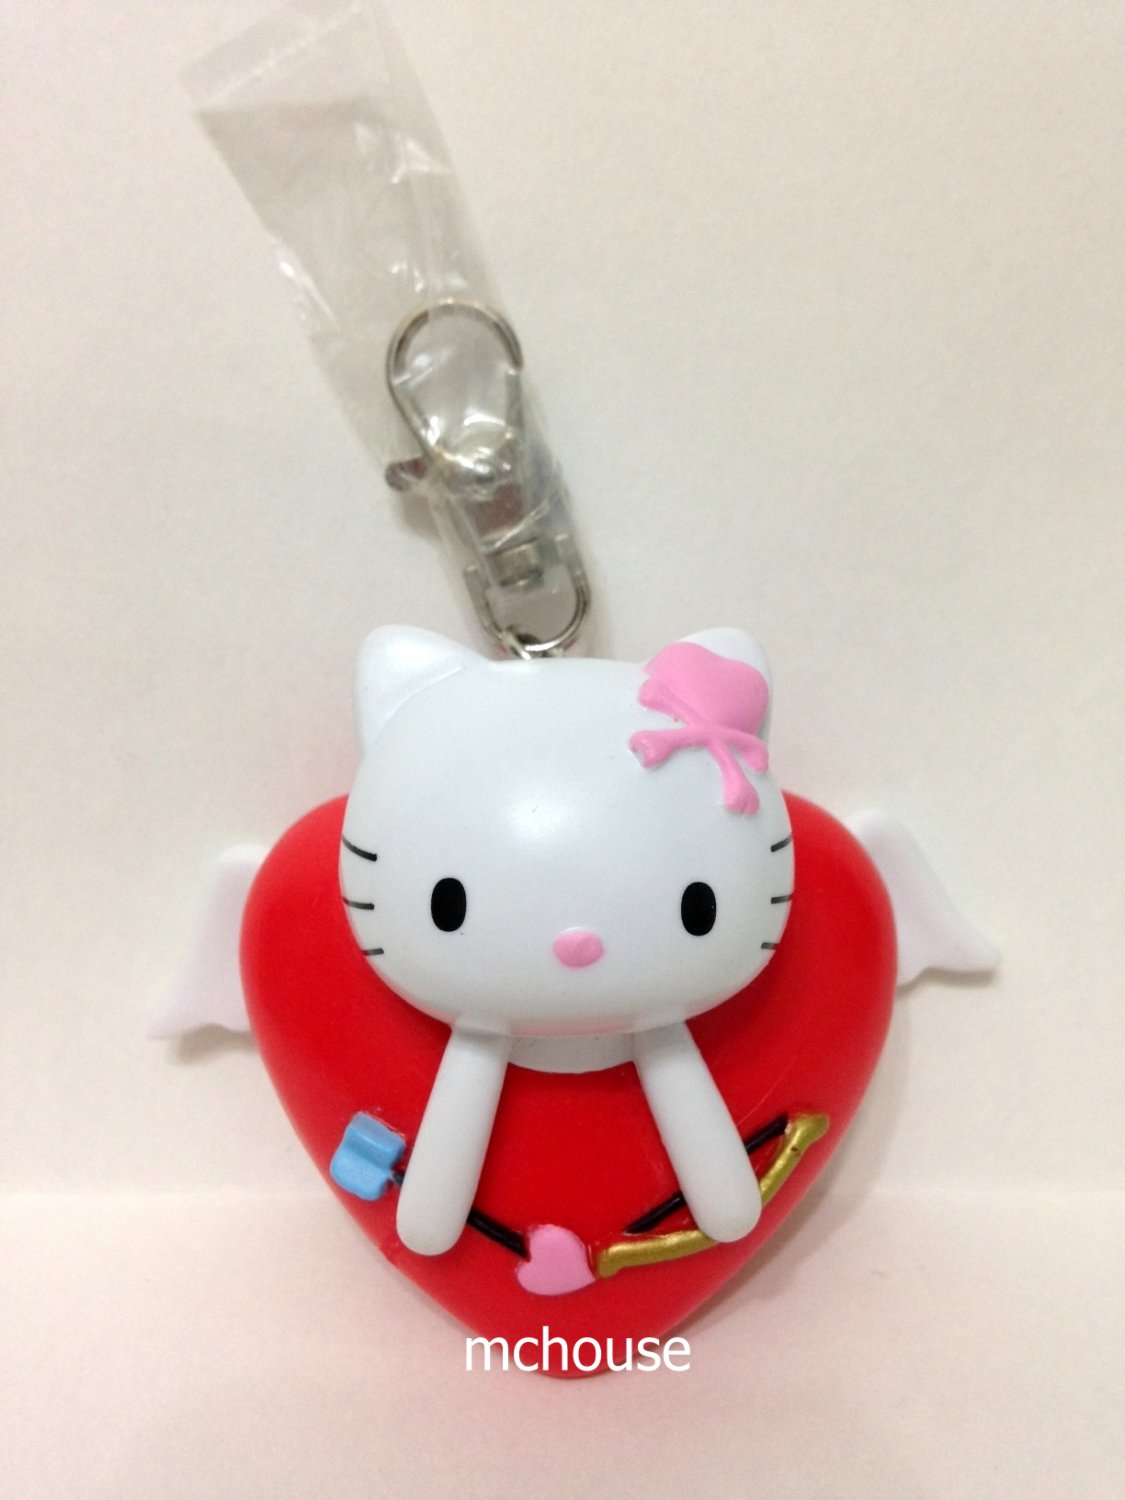 7-11 HK Sanrio Hello Kitty Tokidoki Wonderland Figurine Cupid Kitty